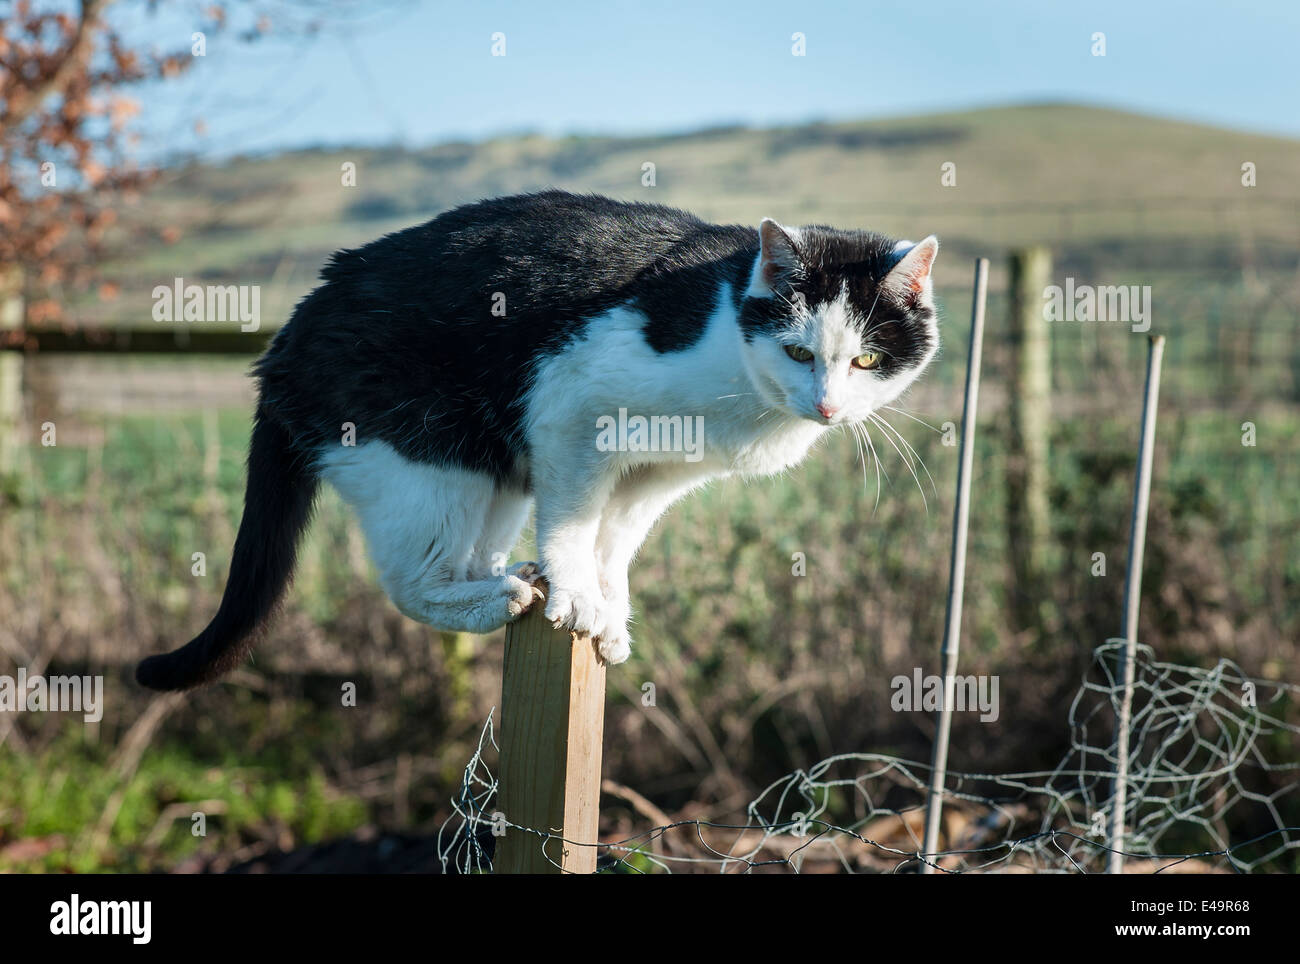 Black and white cat perched on garden post in alert posture during hunting - Stock Image